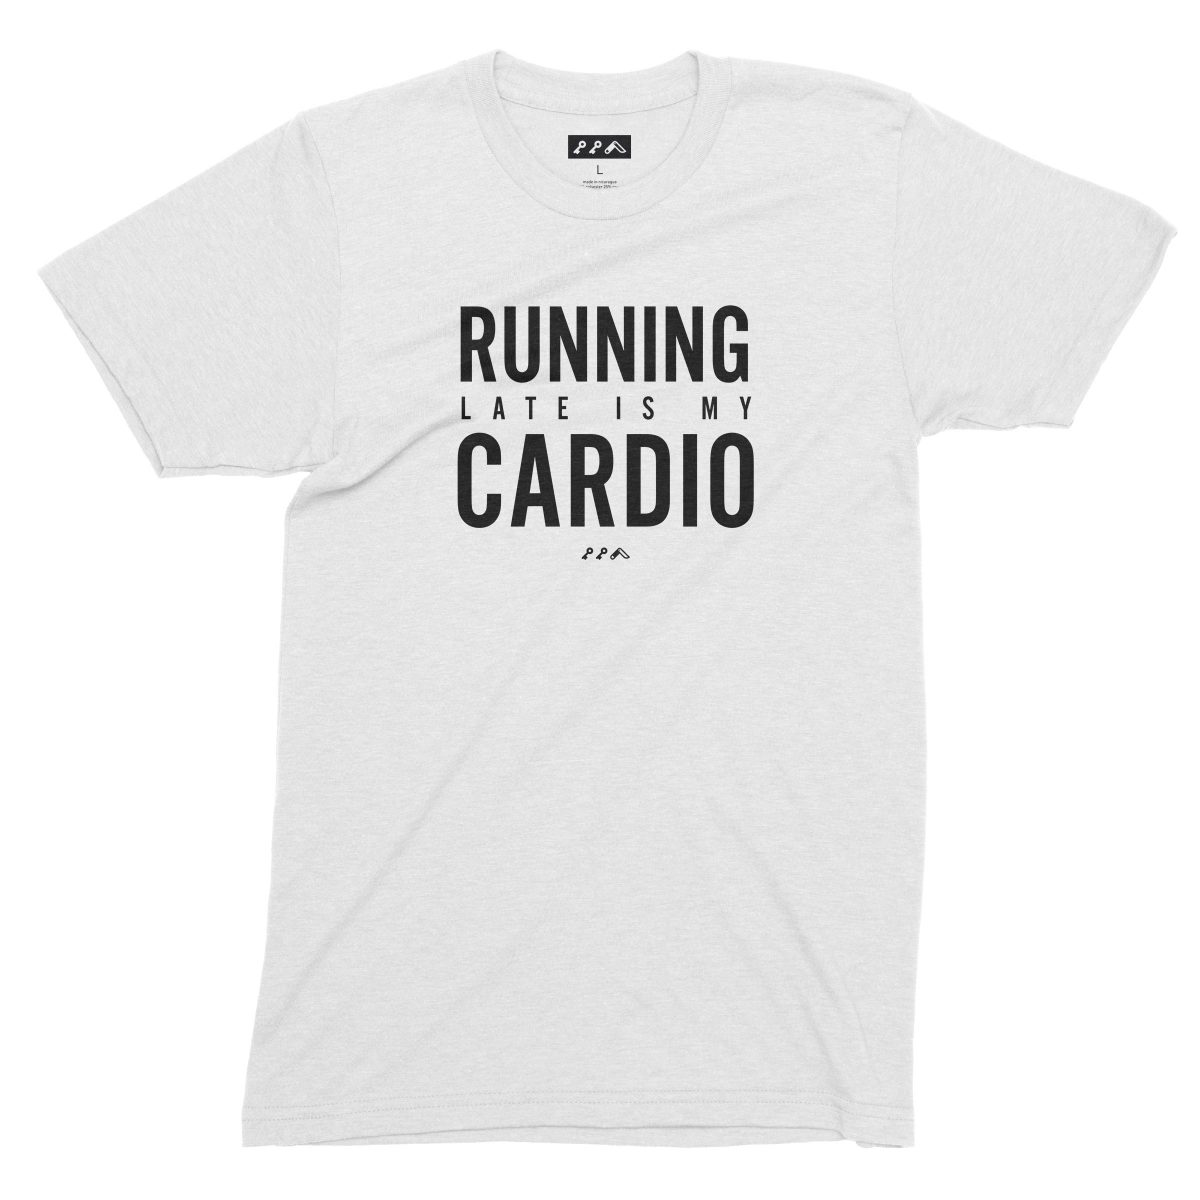 RUNNING LATE IS MY CARDIO funny workout t-shirts in white by kikicutt